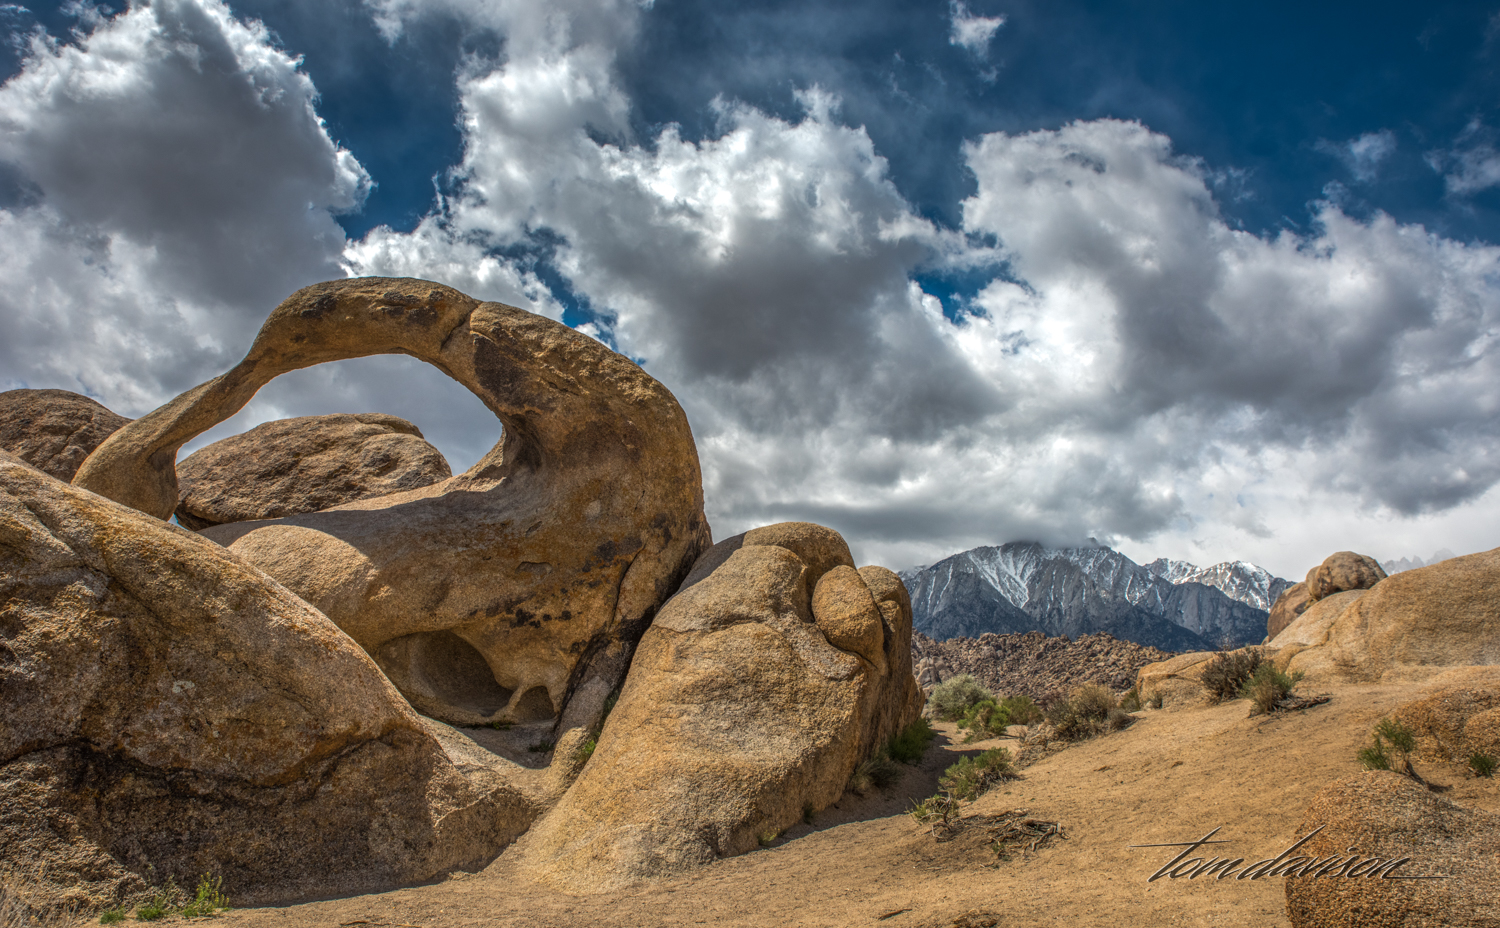 There are many photographic compositions at Mobius Arch because you can actually walk around it.